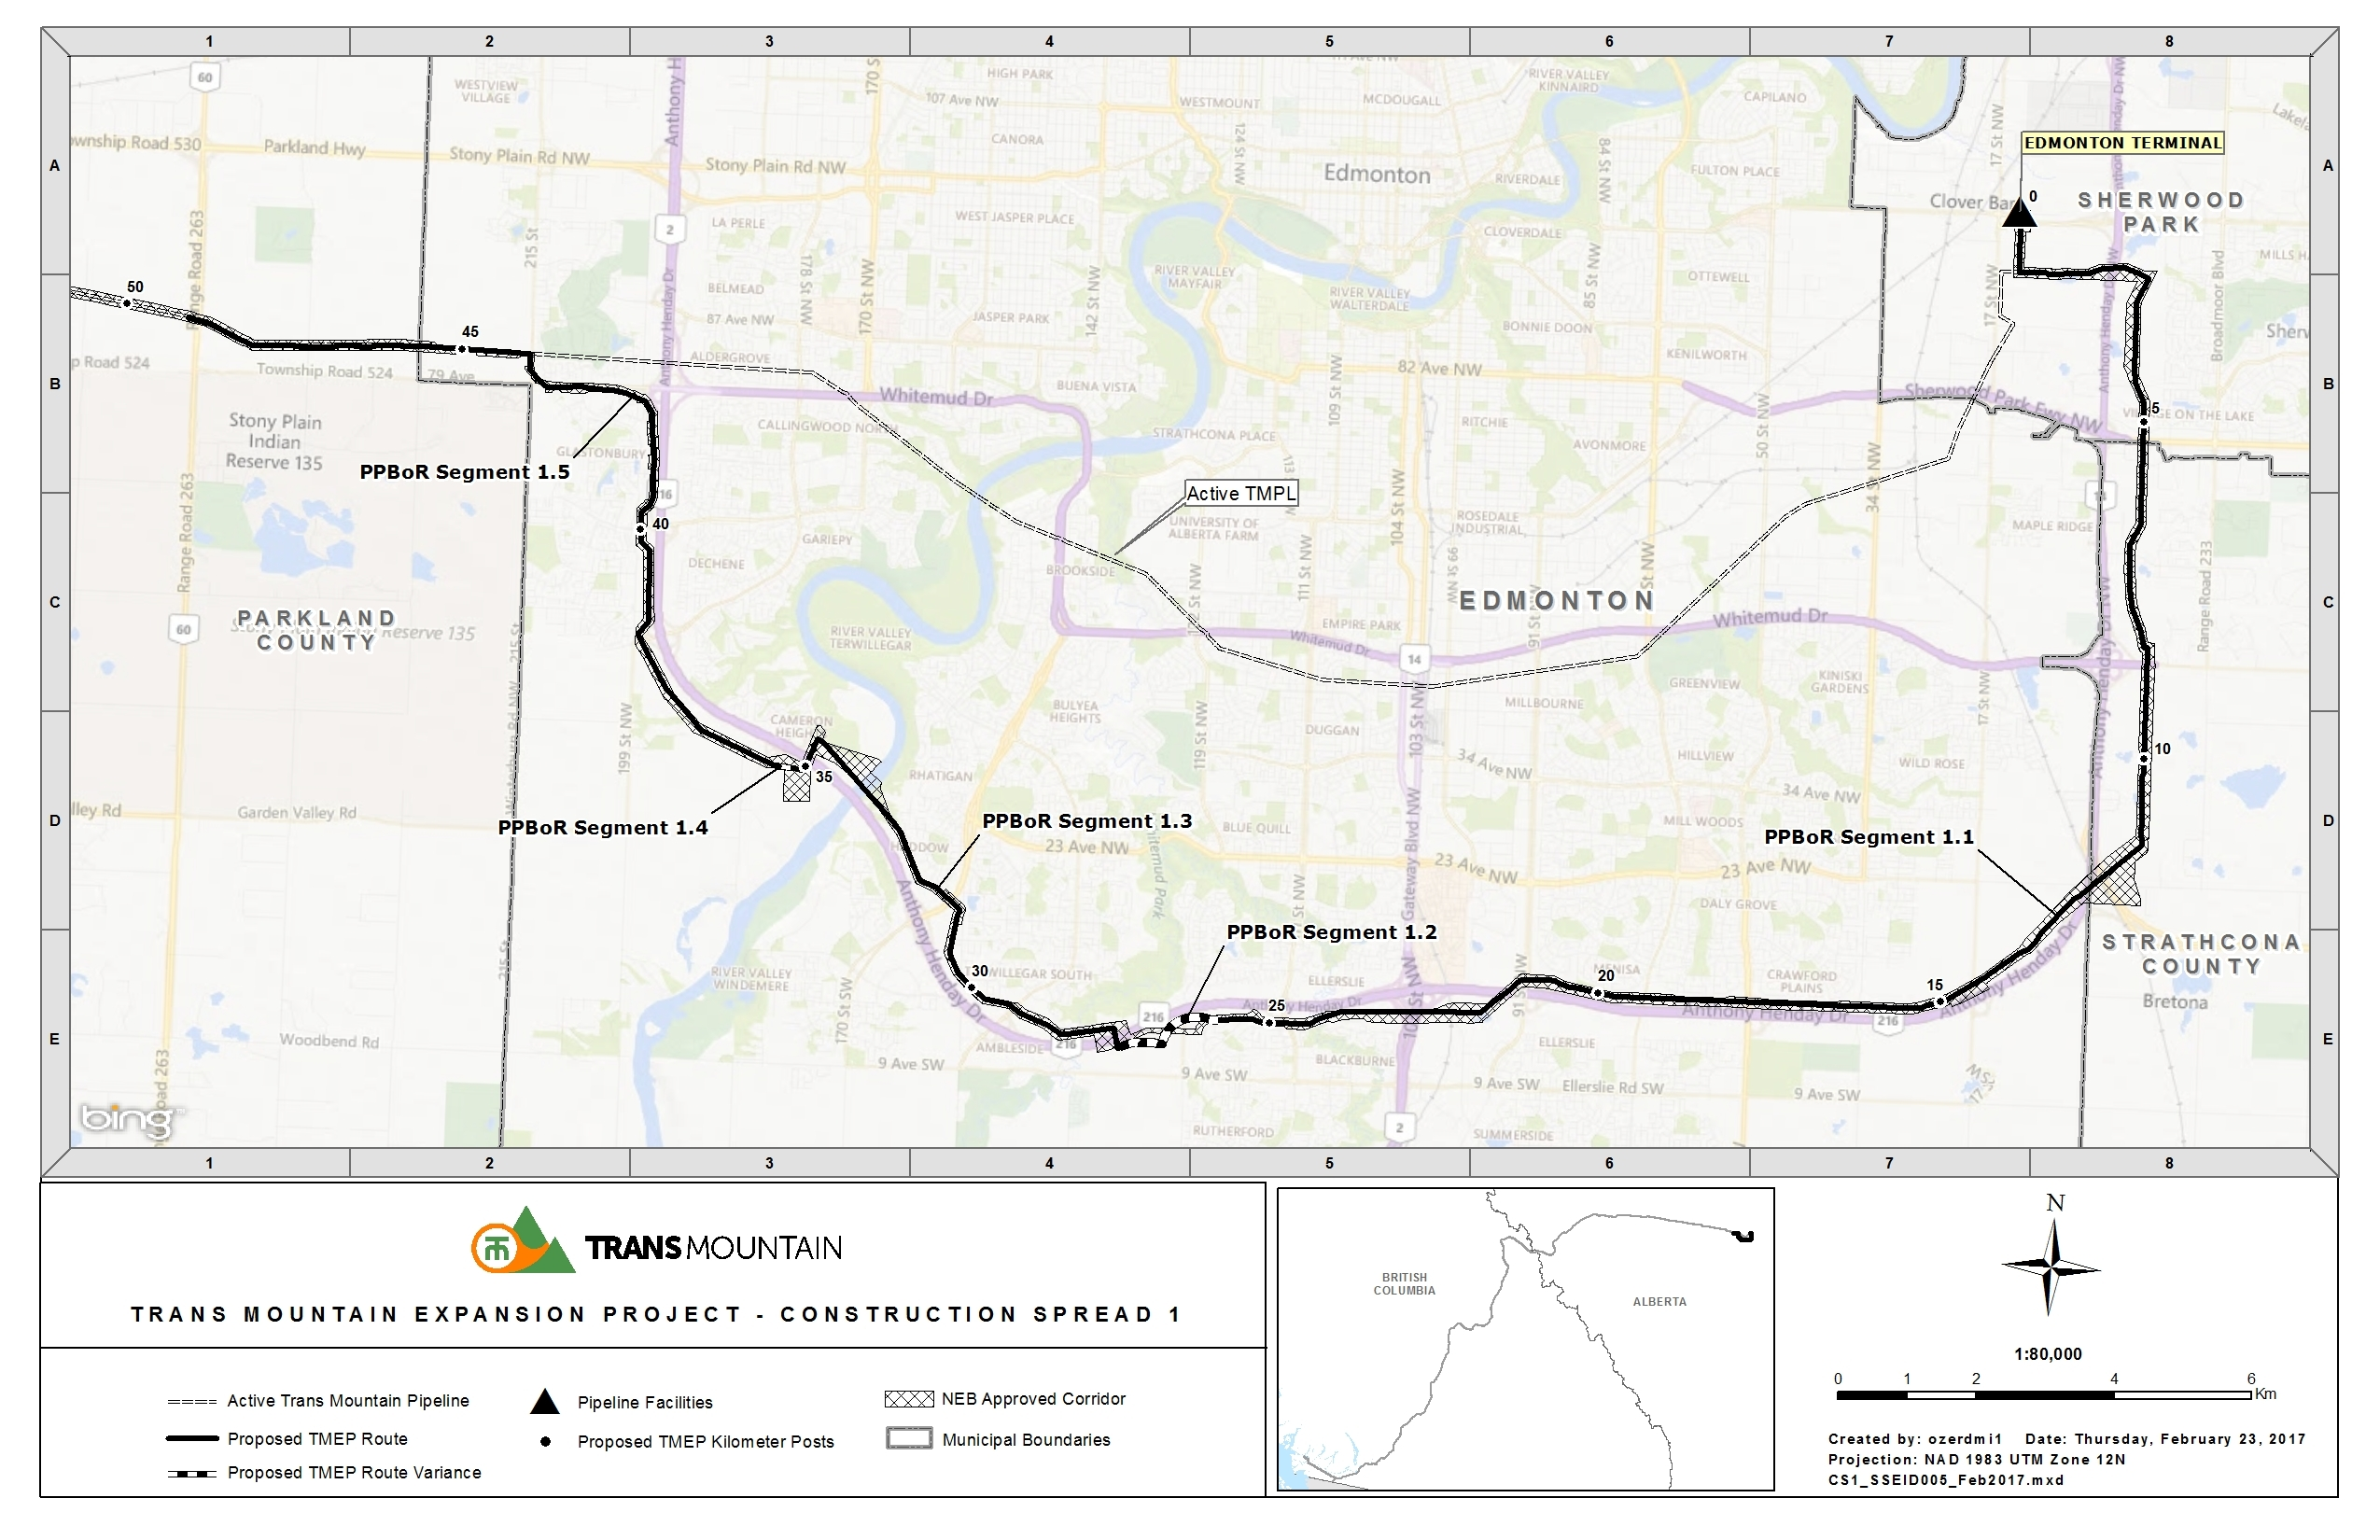 Detailed Route Trans Mountain Western Saddle Diagram View The Full Ppbor Segment Map Here